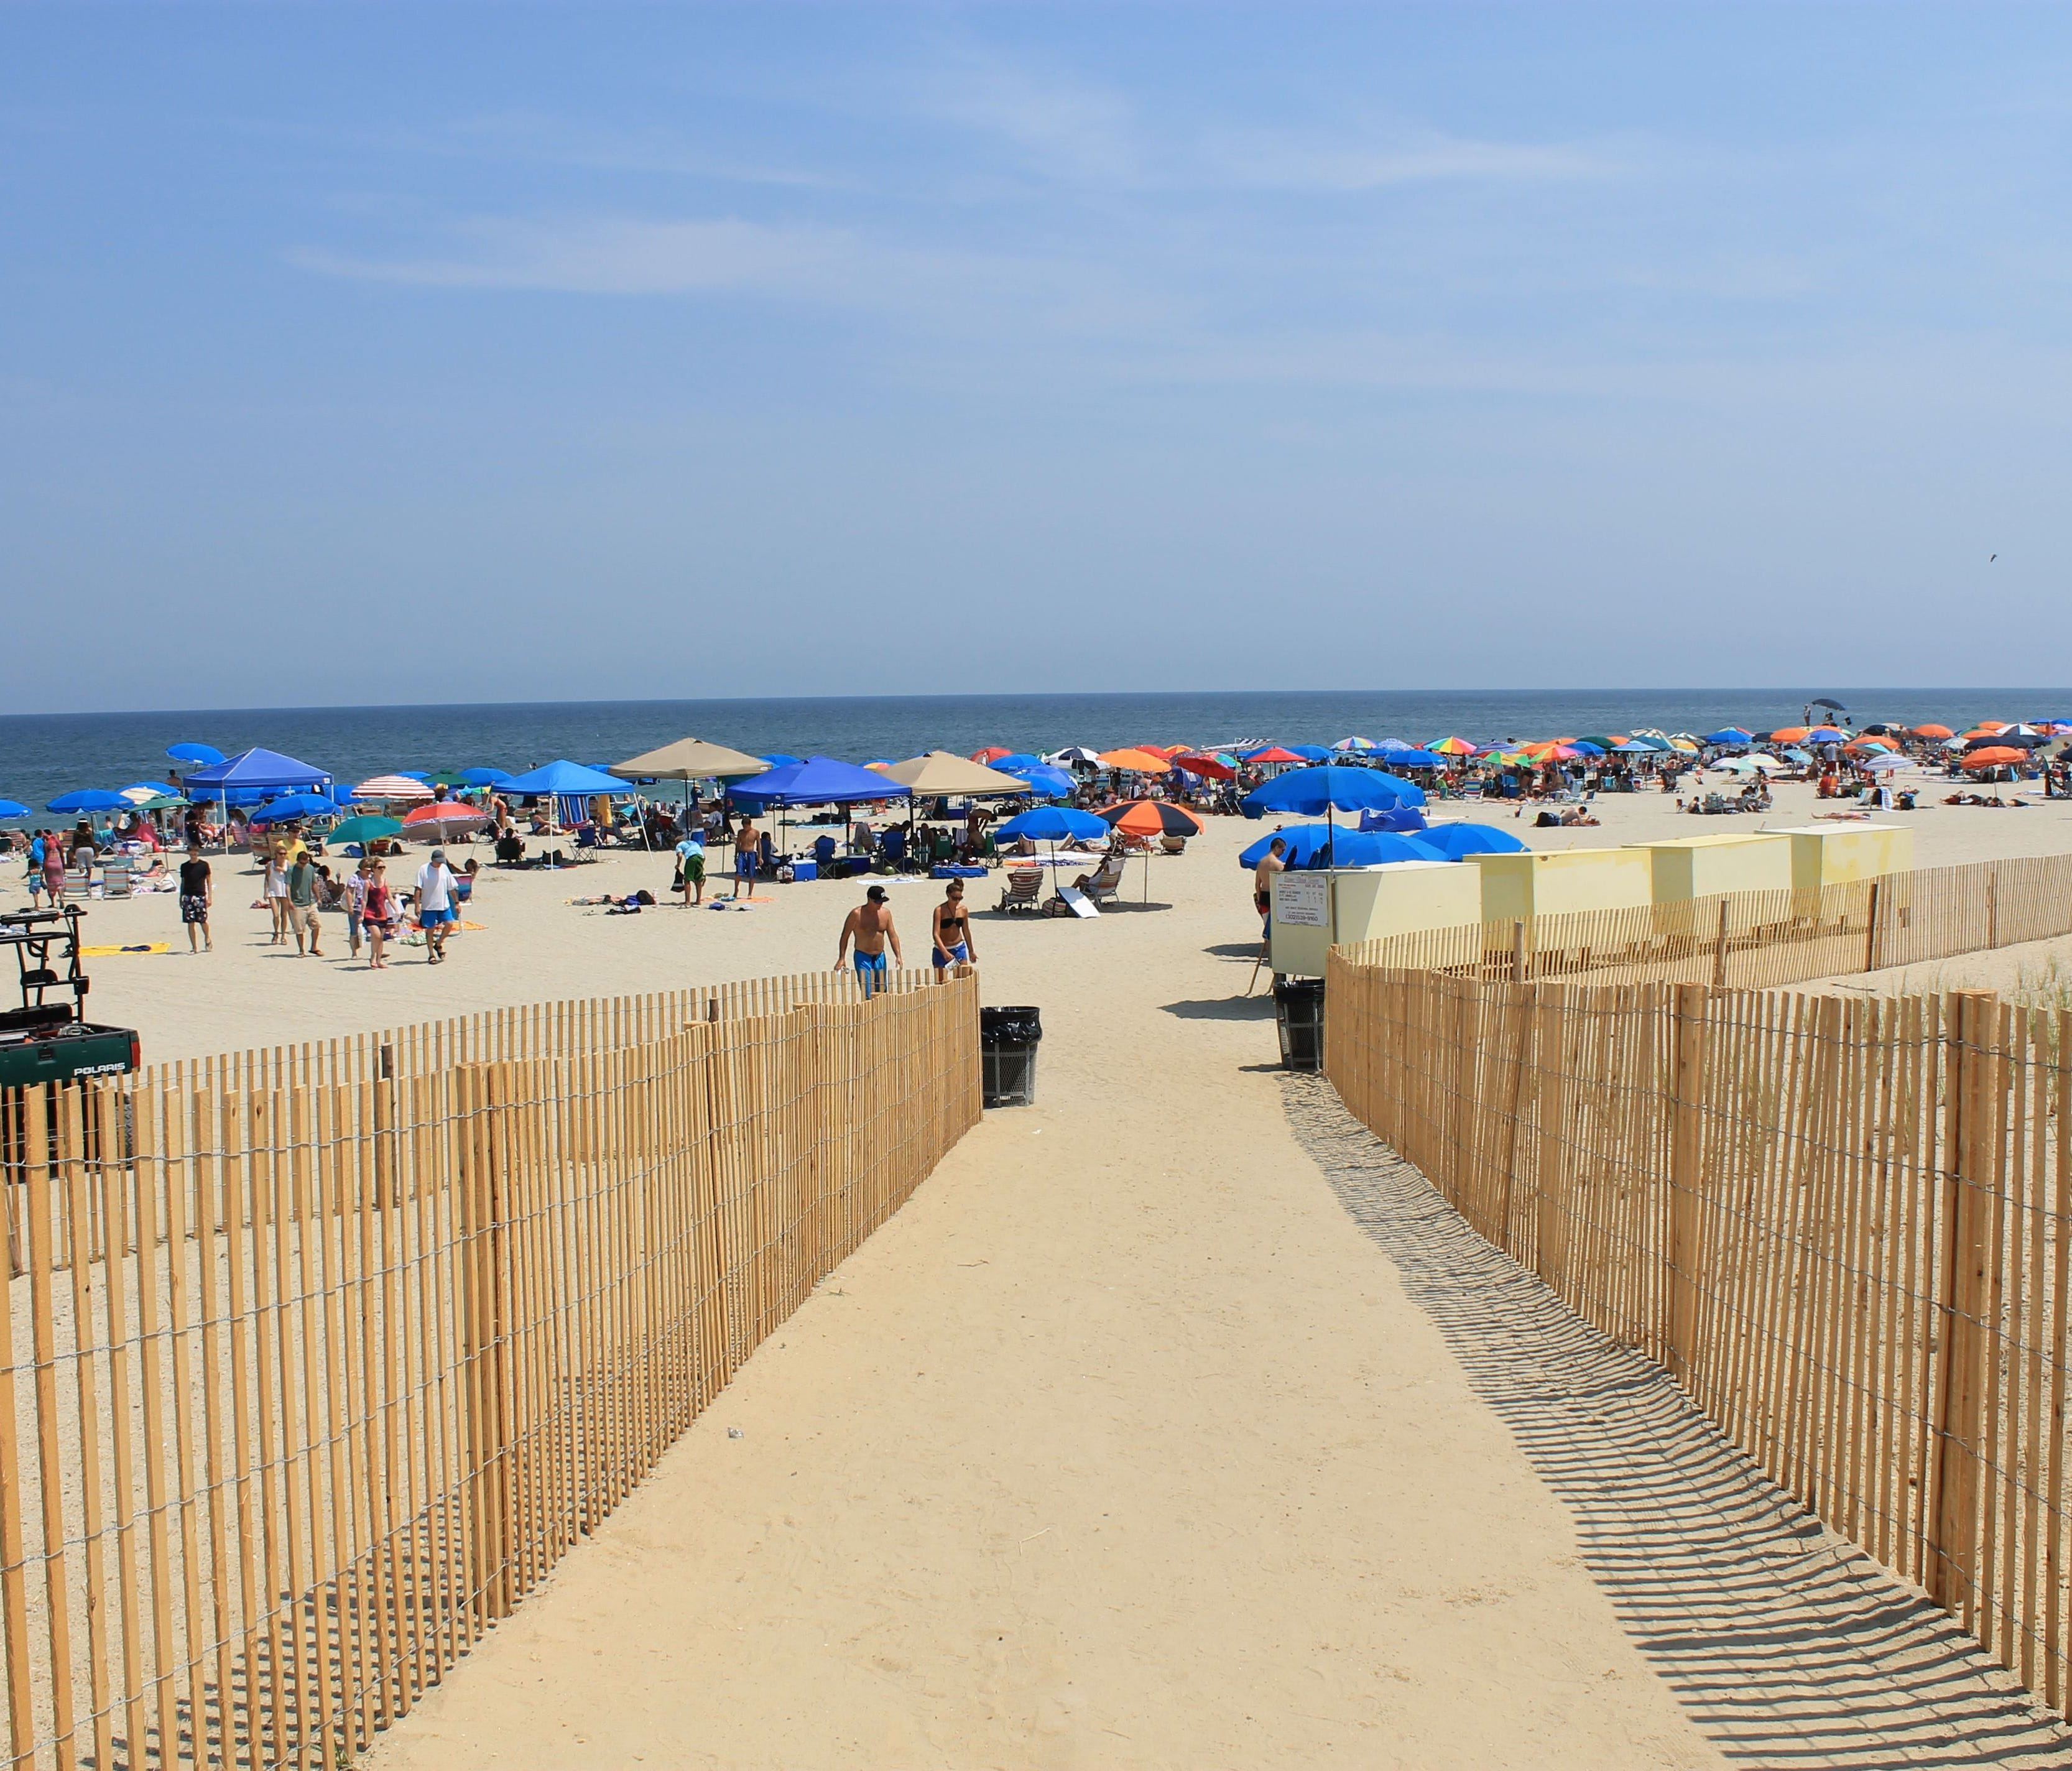 Bethany Beach's 1-mile-long sandy beach primarily attracts families spending a few days, a week or longer in this quiet seaside town.